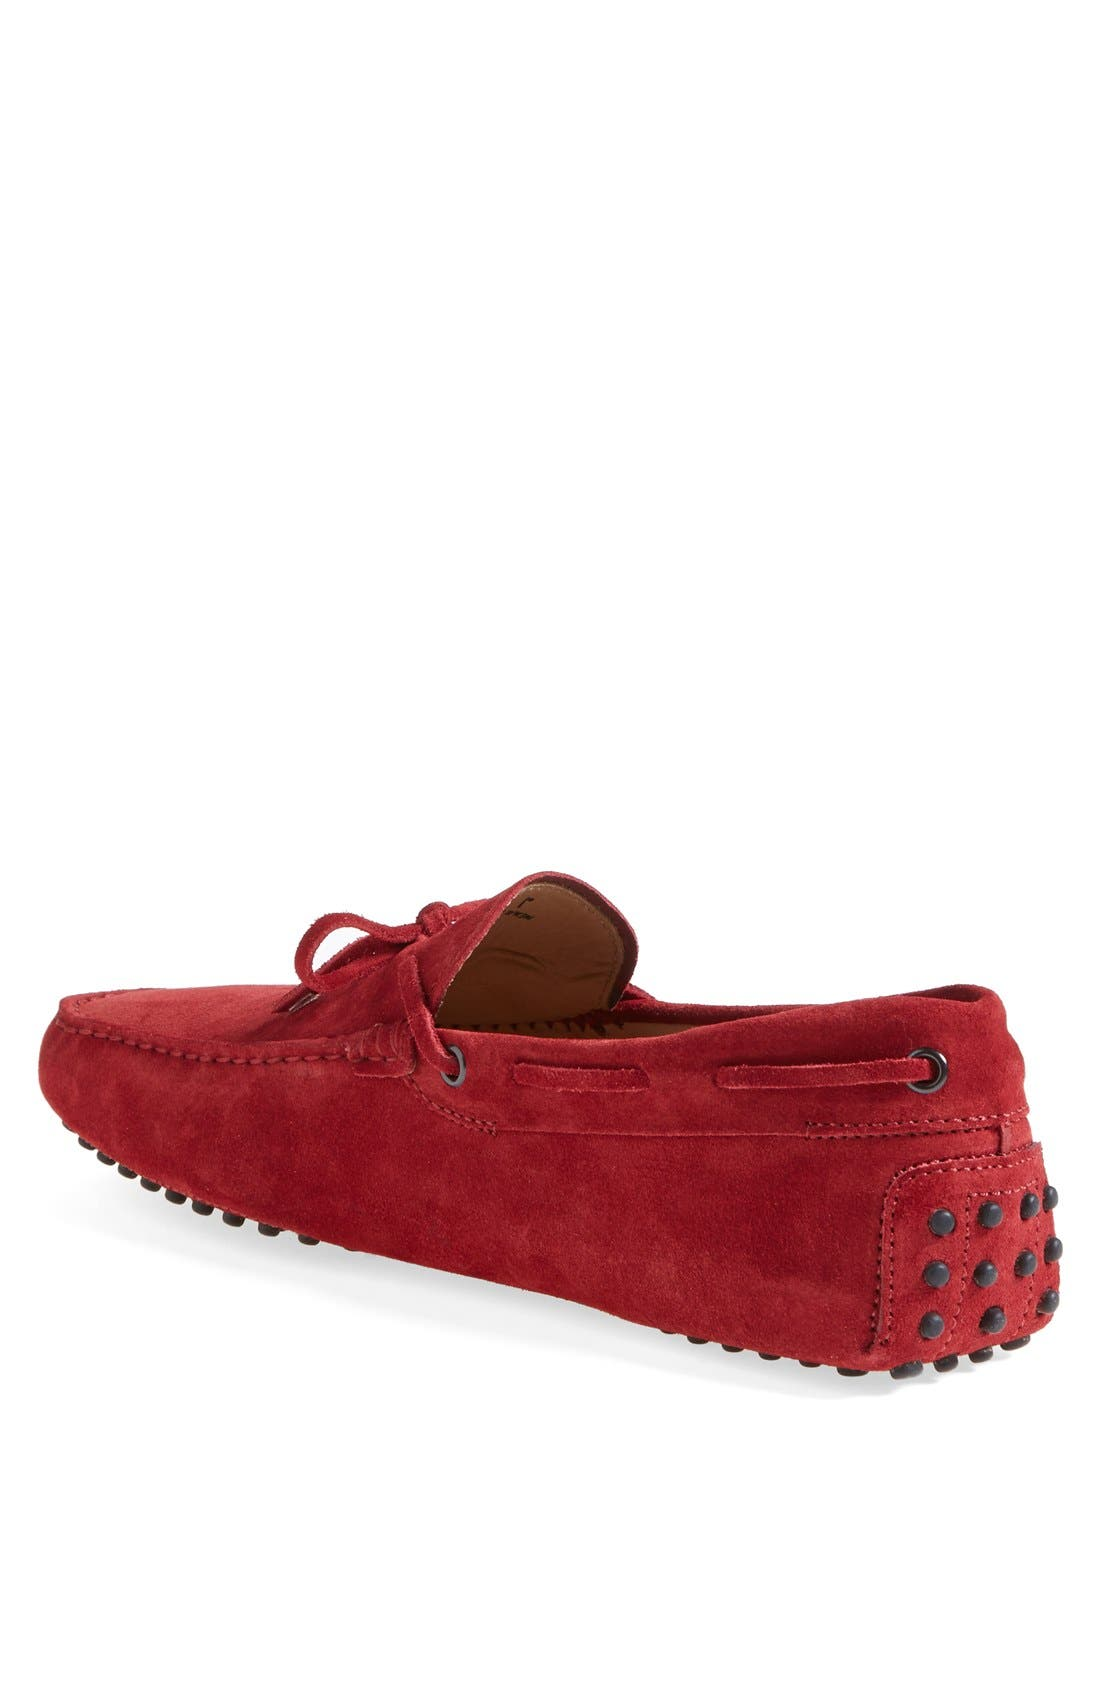 Gommini Tie Front Driving Moccasin,                             Alternate thumbnail 63, color,